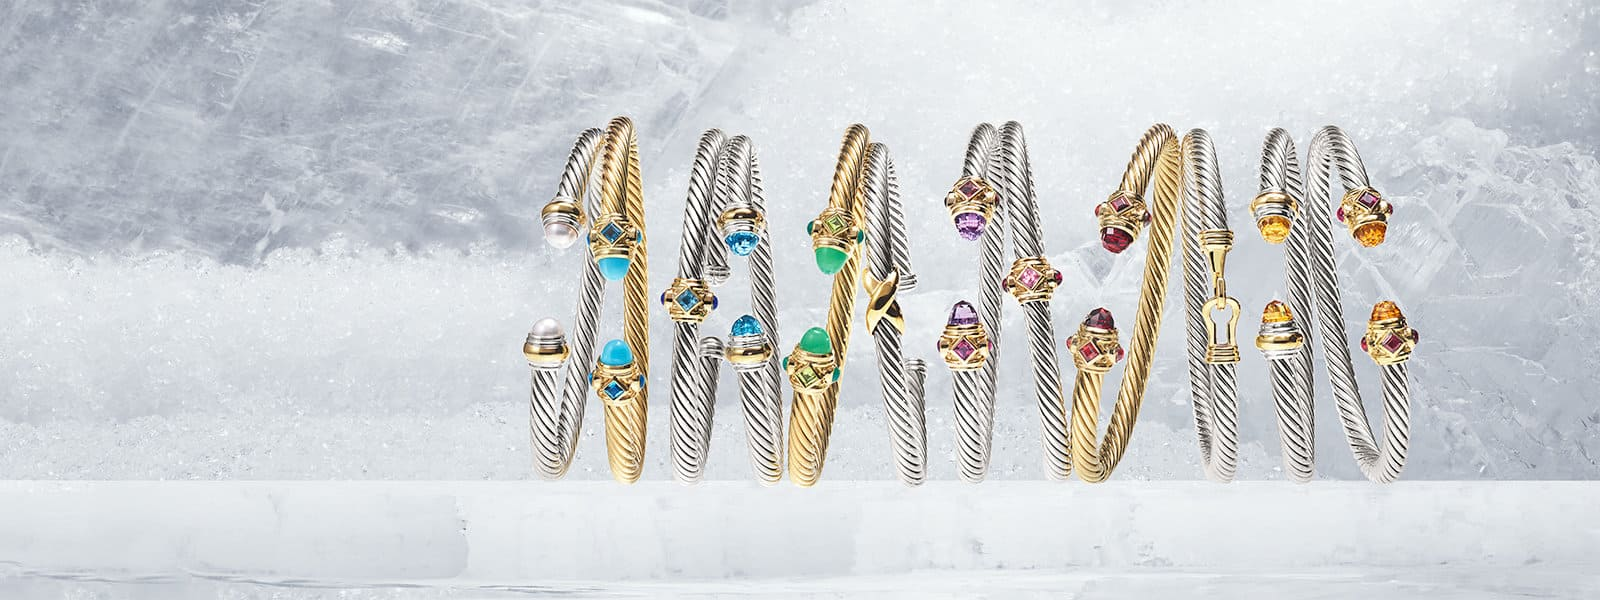 The Cable Collection® bracelets in sterling silver and 18K yellow gold with several colorful gemstones, in a row on sheets of ice.